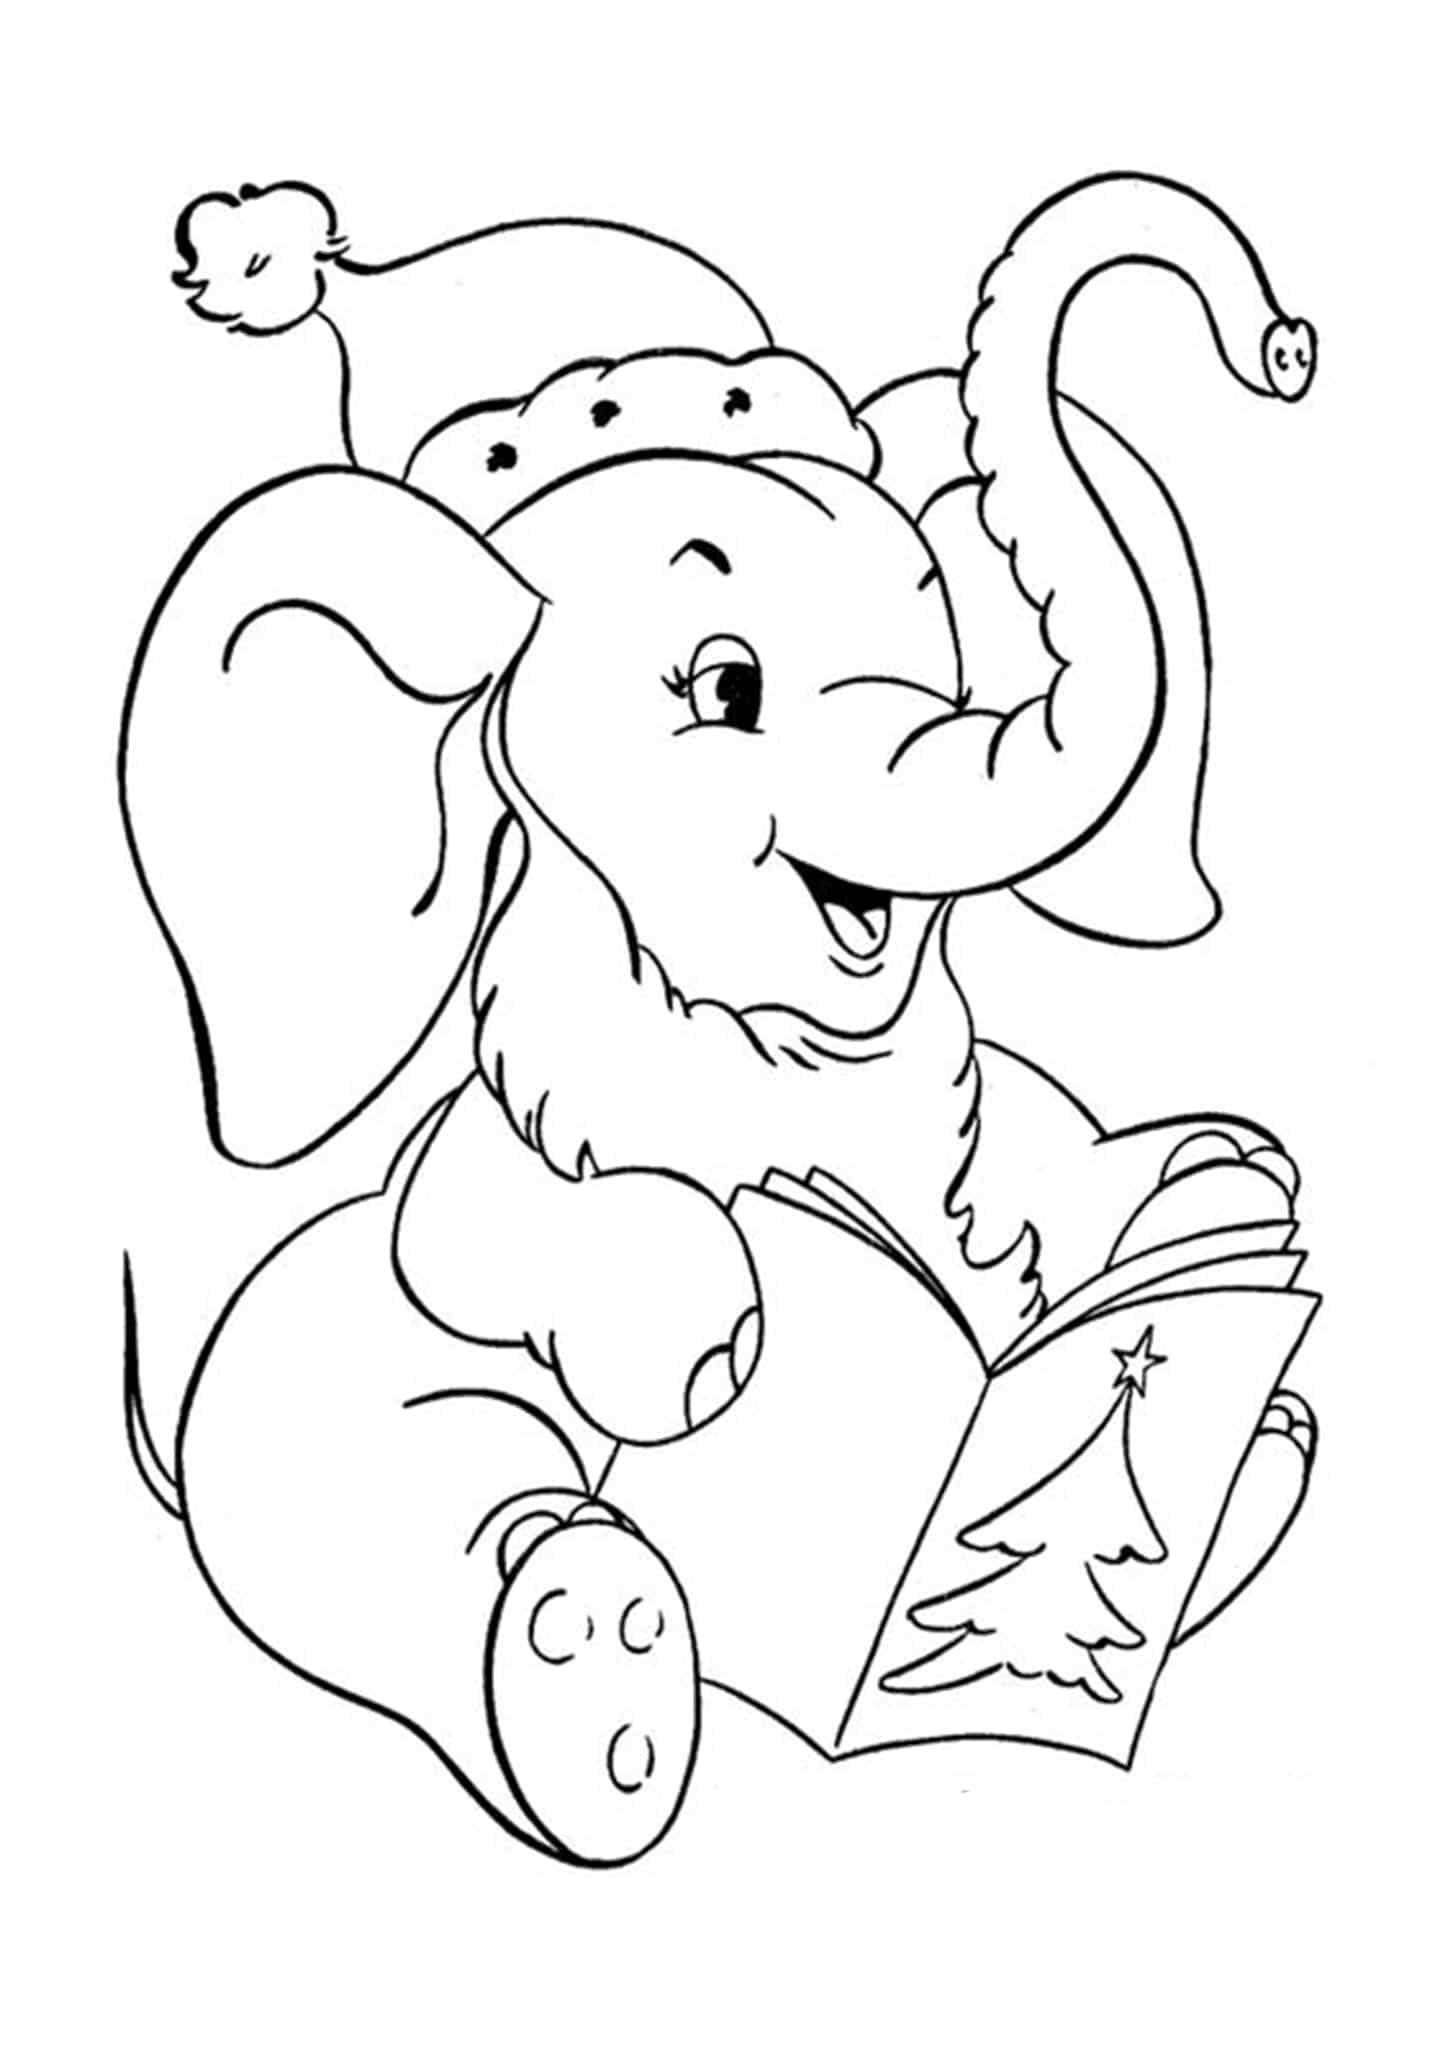 simple elephant coloring page simple elephant colouring page my free colouring pages elephant simple page coloring